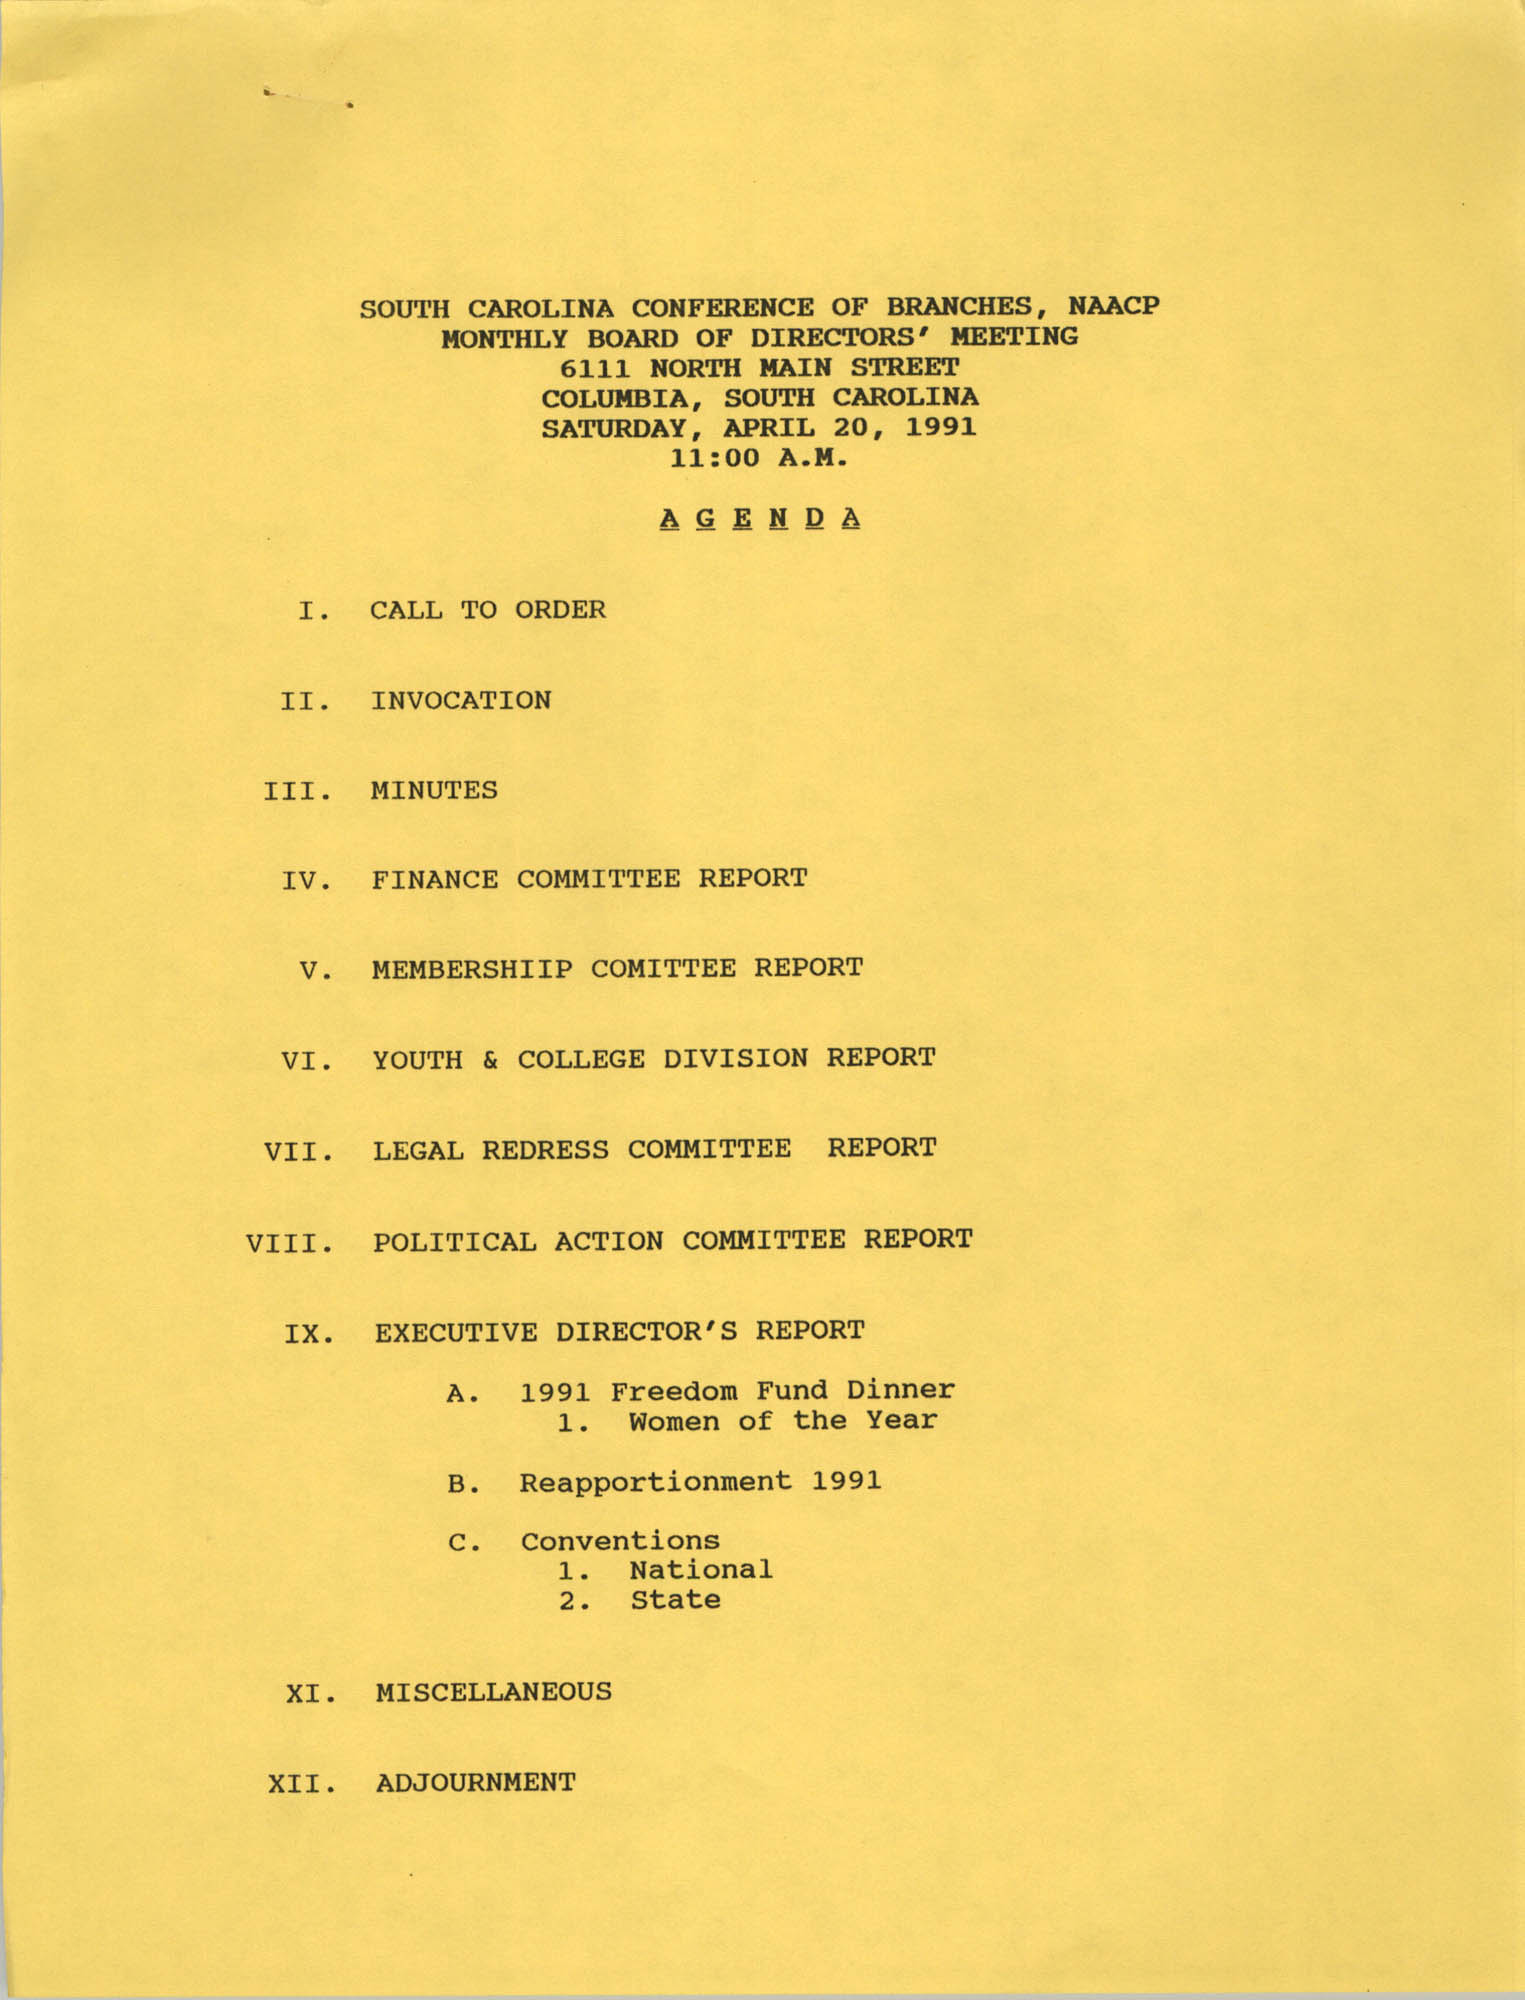 Agenda, South Carolina Conference of Branches of the NAACP, April 20, 1991